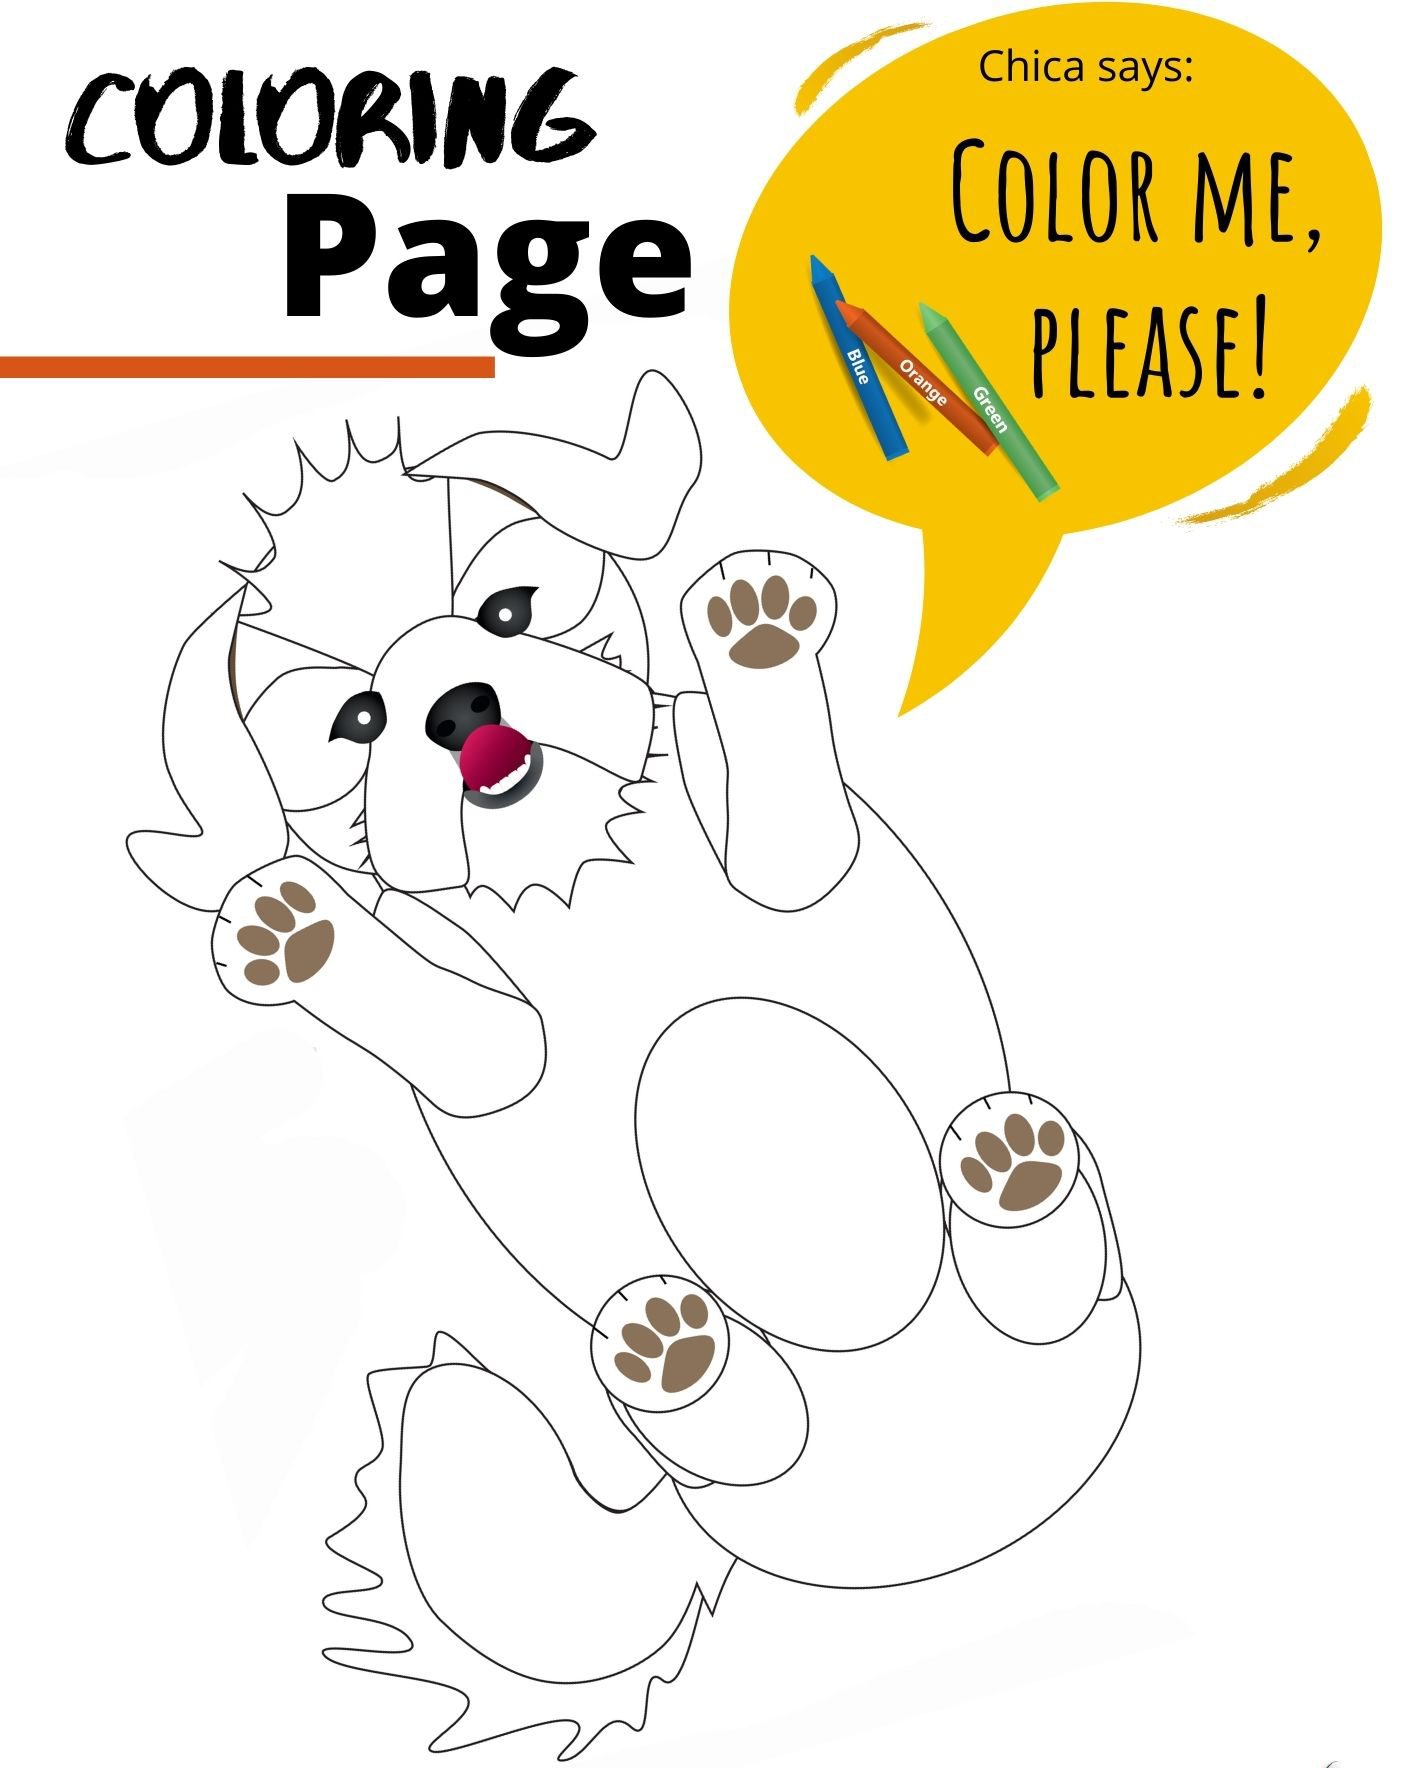 Coloring Page of Chica the dog